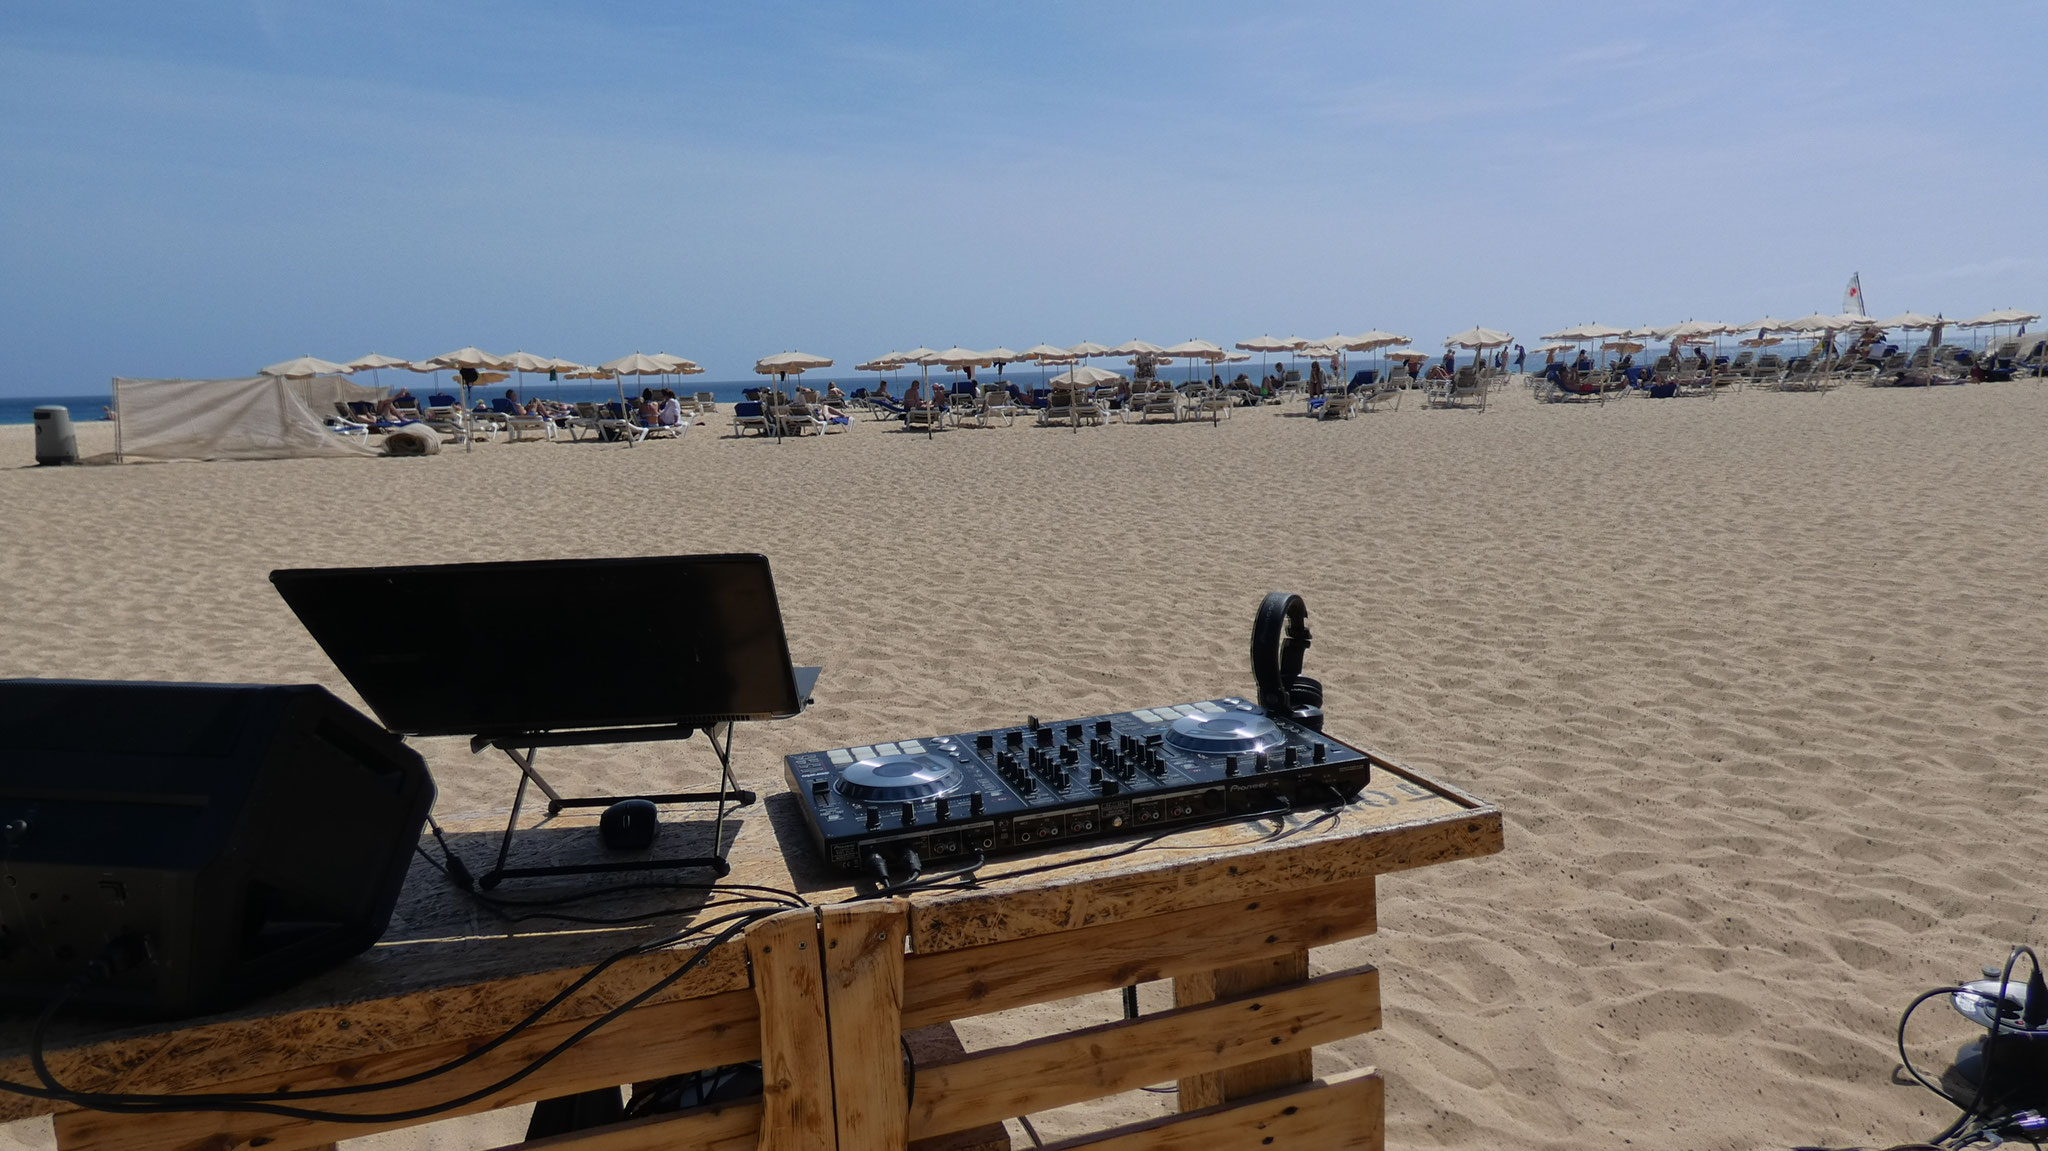 Beach Party @ Fuerteventura Spain